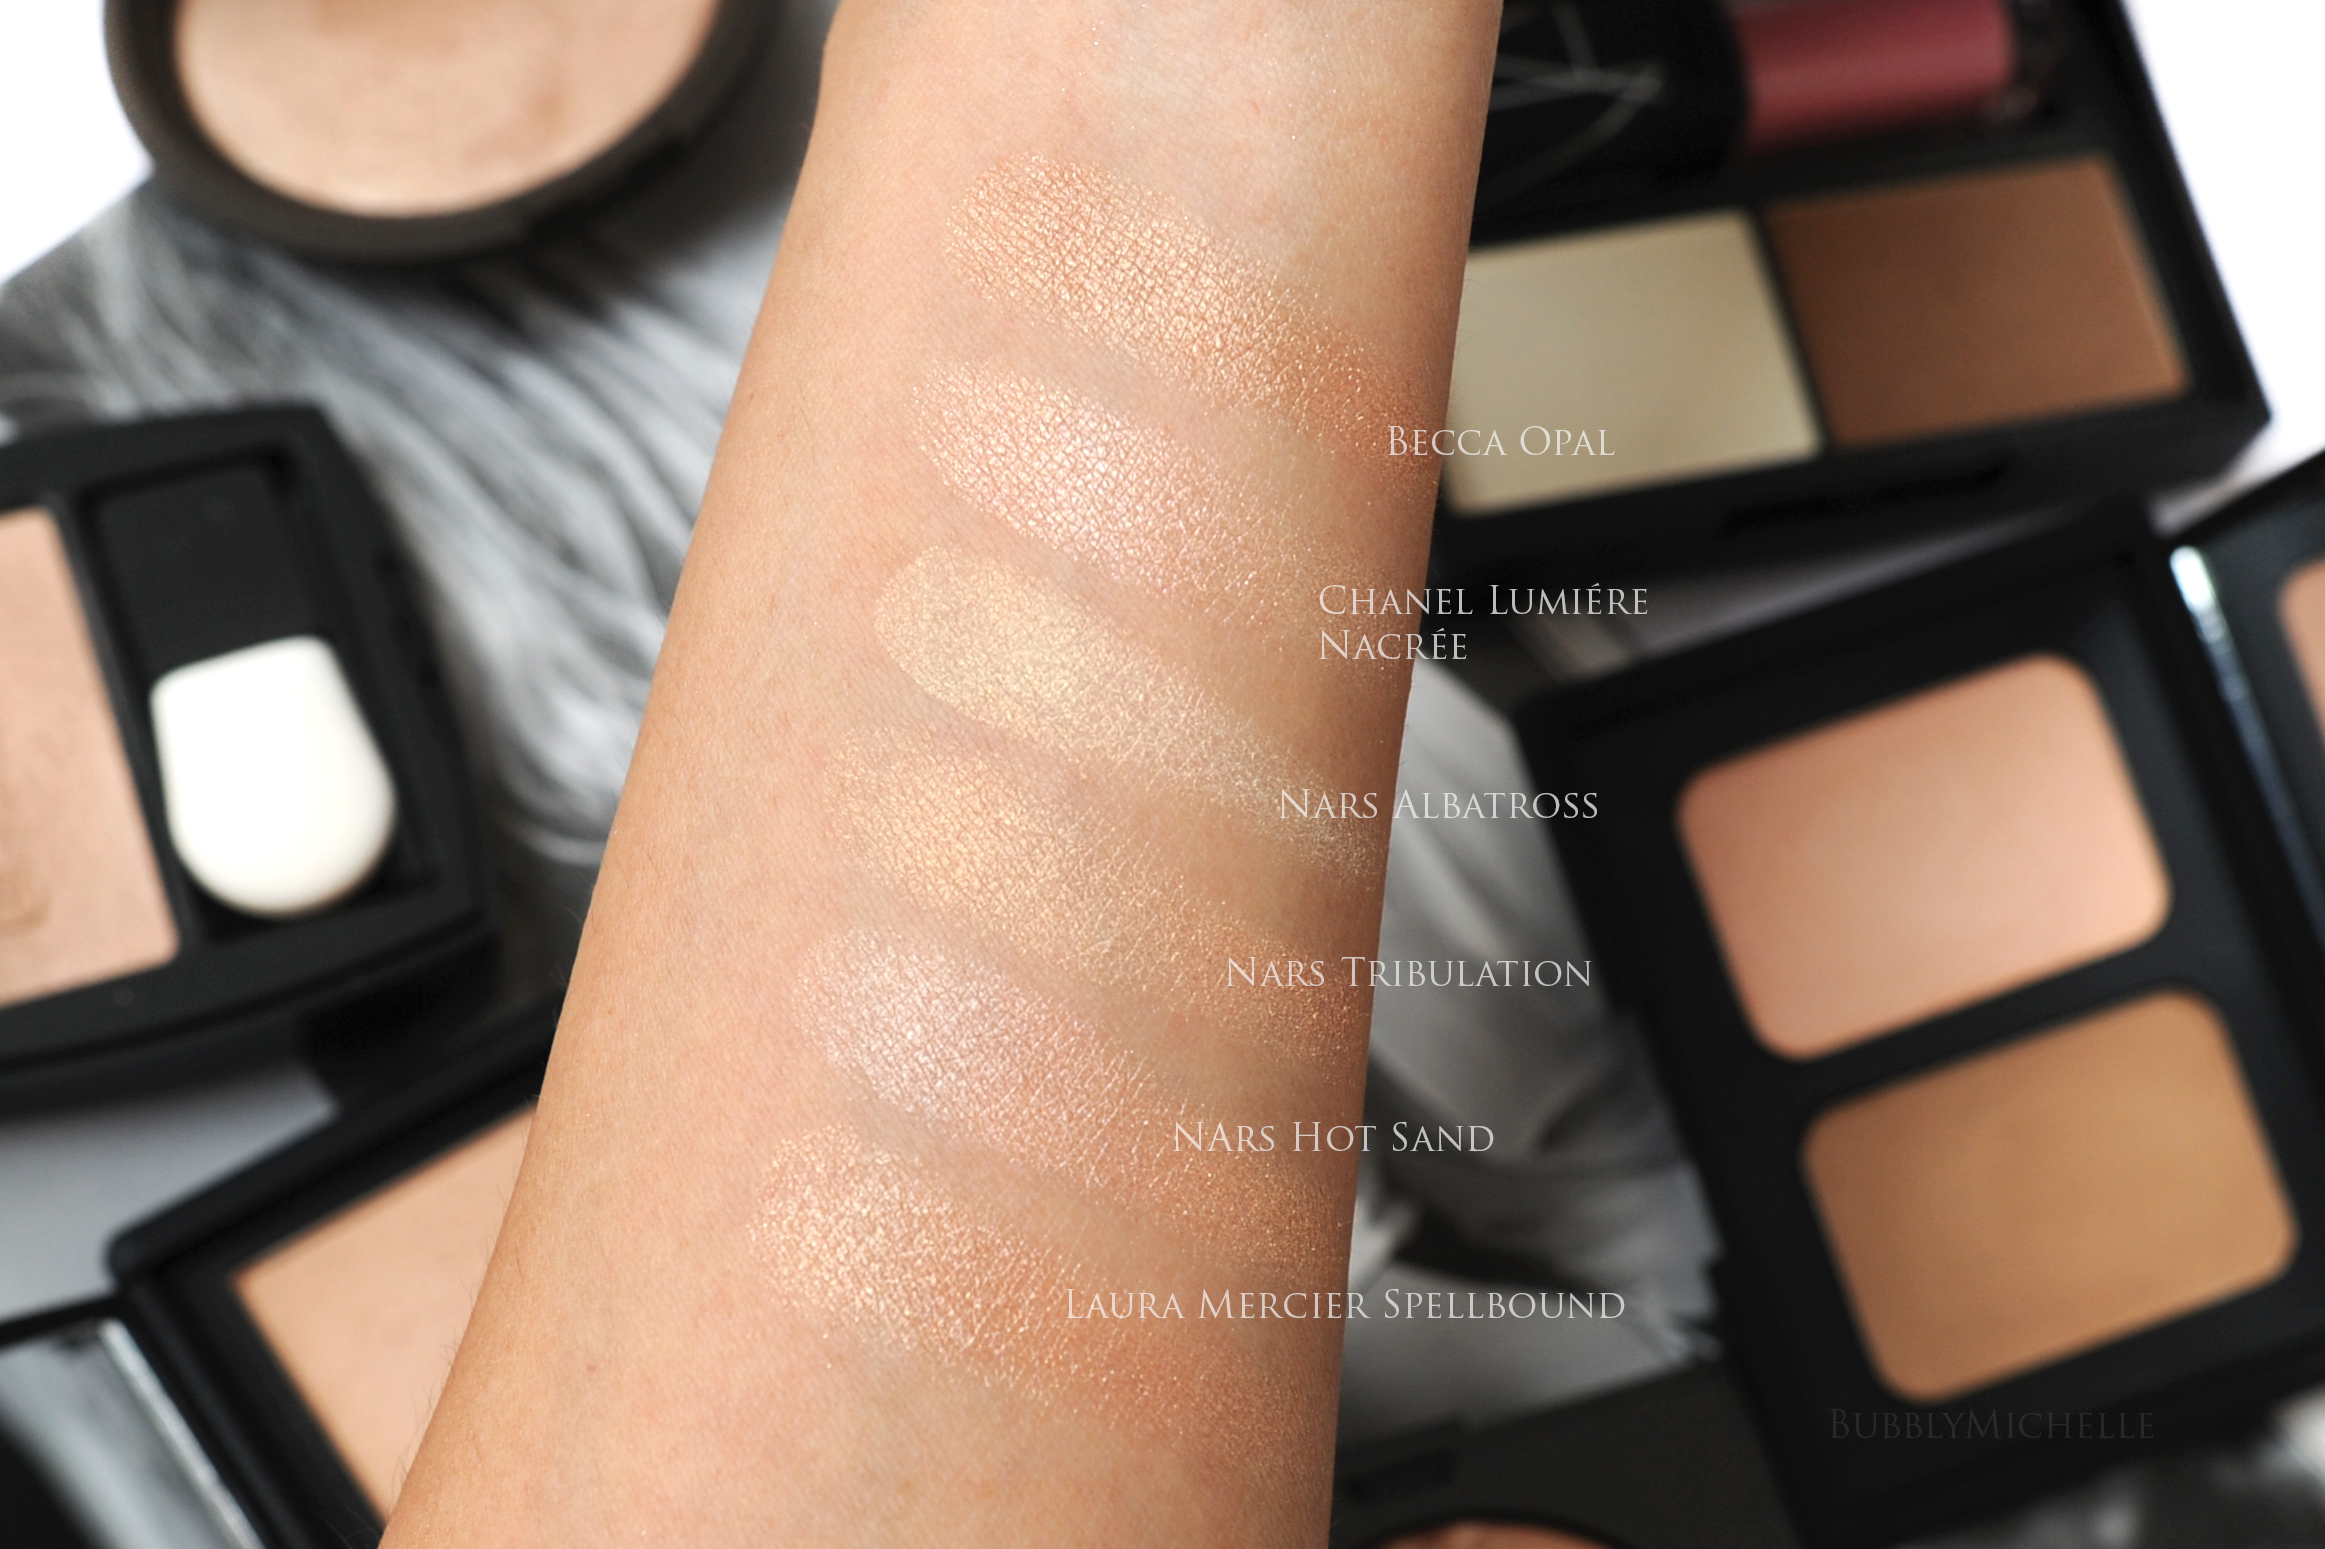 Nars Hot Sand Collection Review, Fotos farveprøver-8493